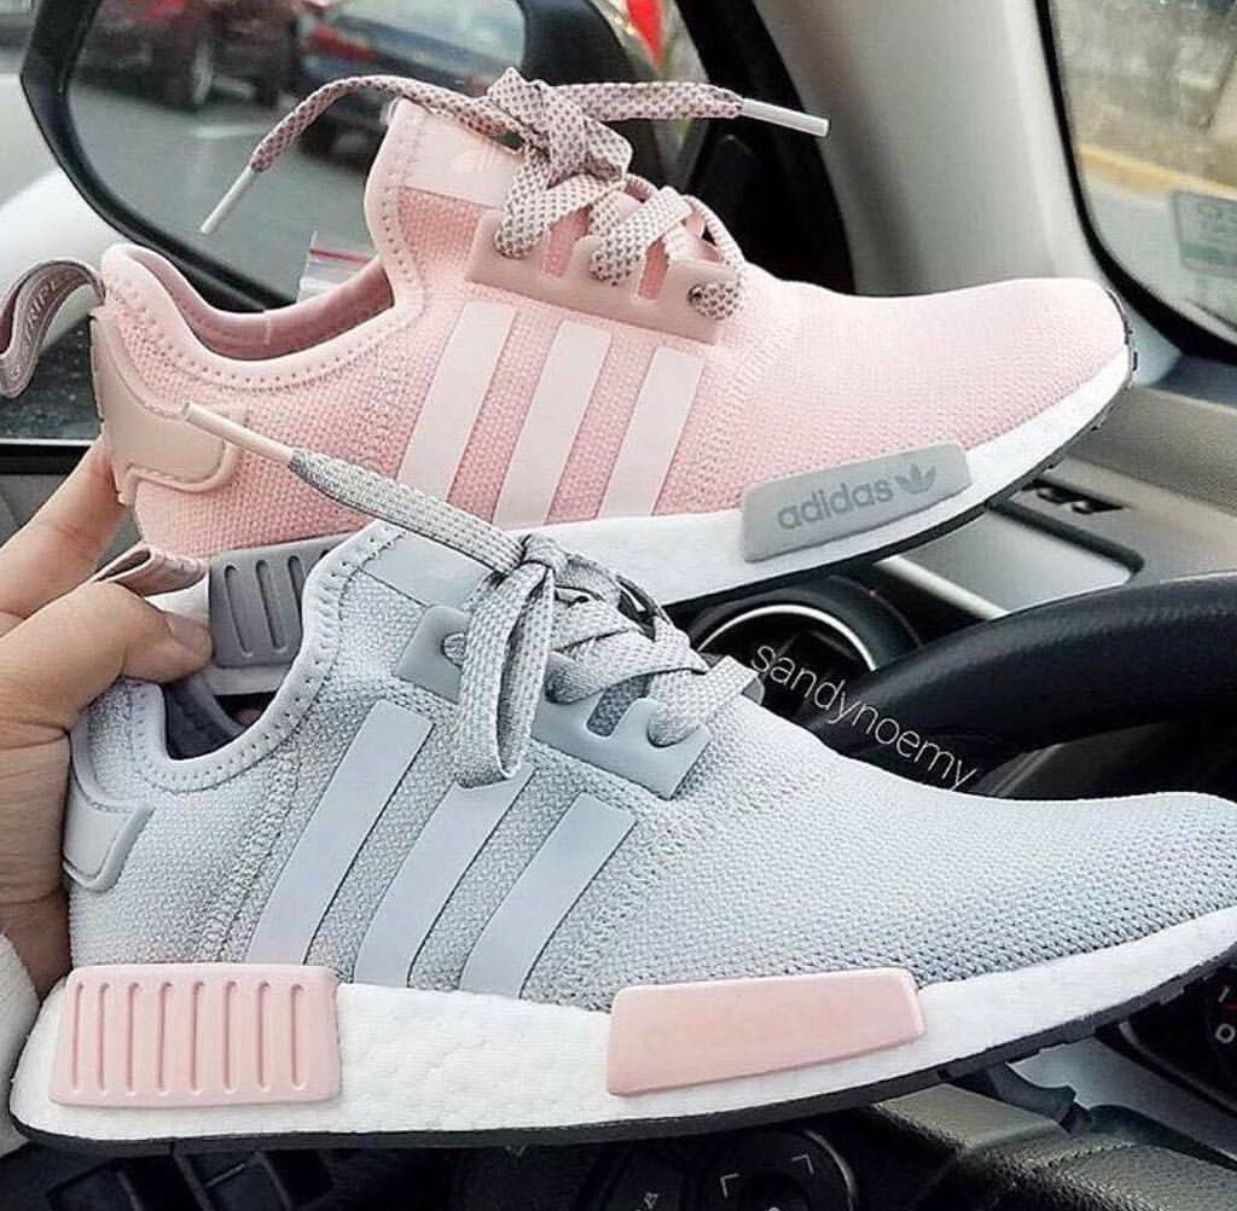 Pin by Julia Cole on Shoes in 2020 | Addidas shoes, Shoes